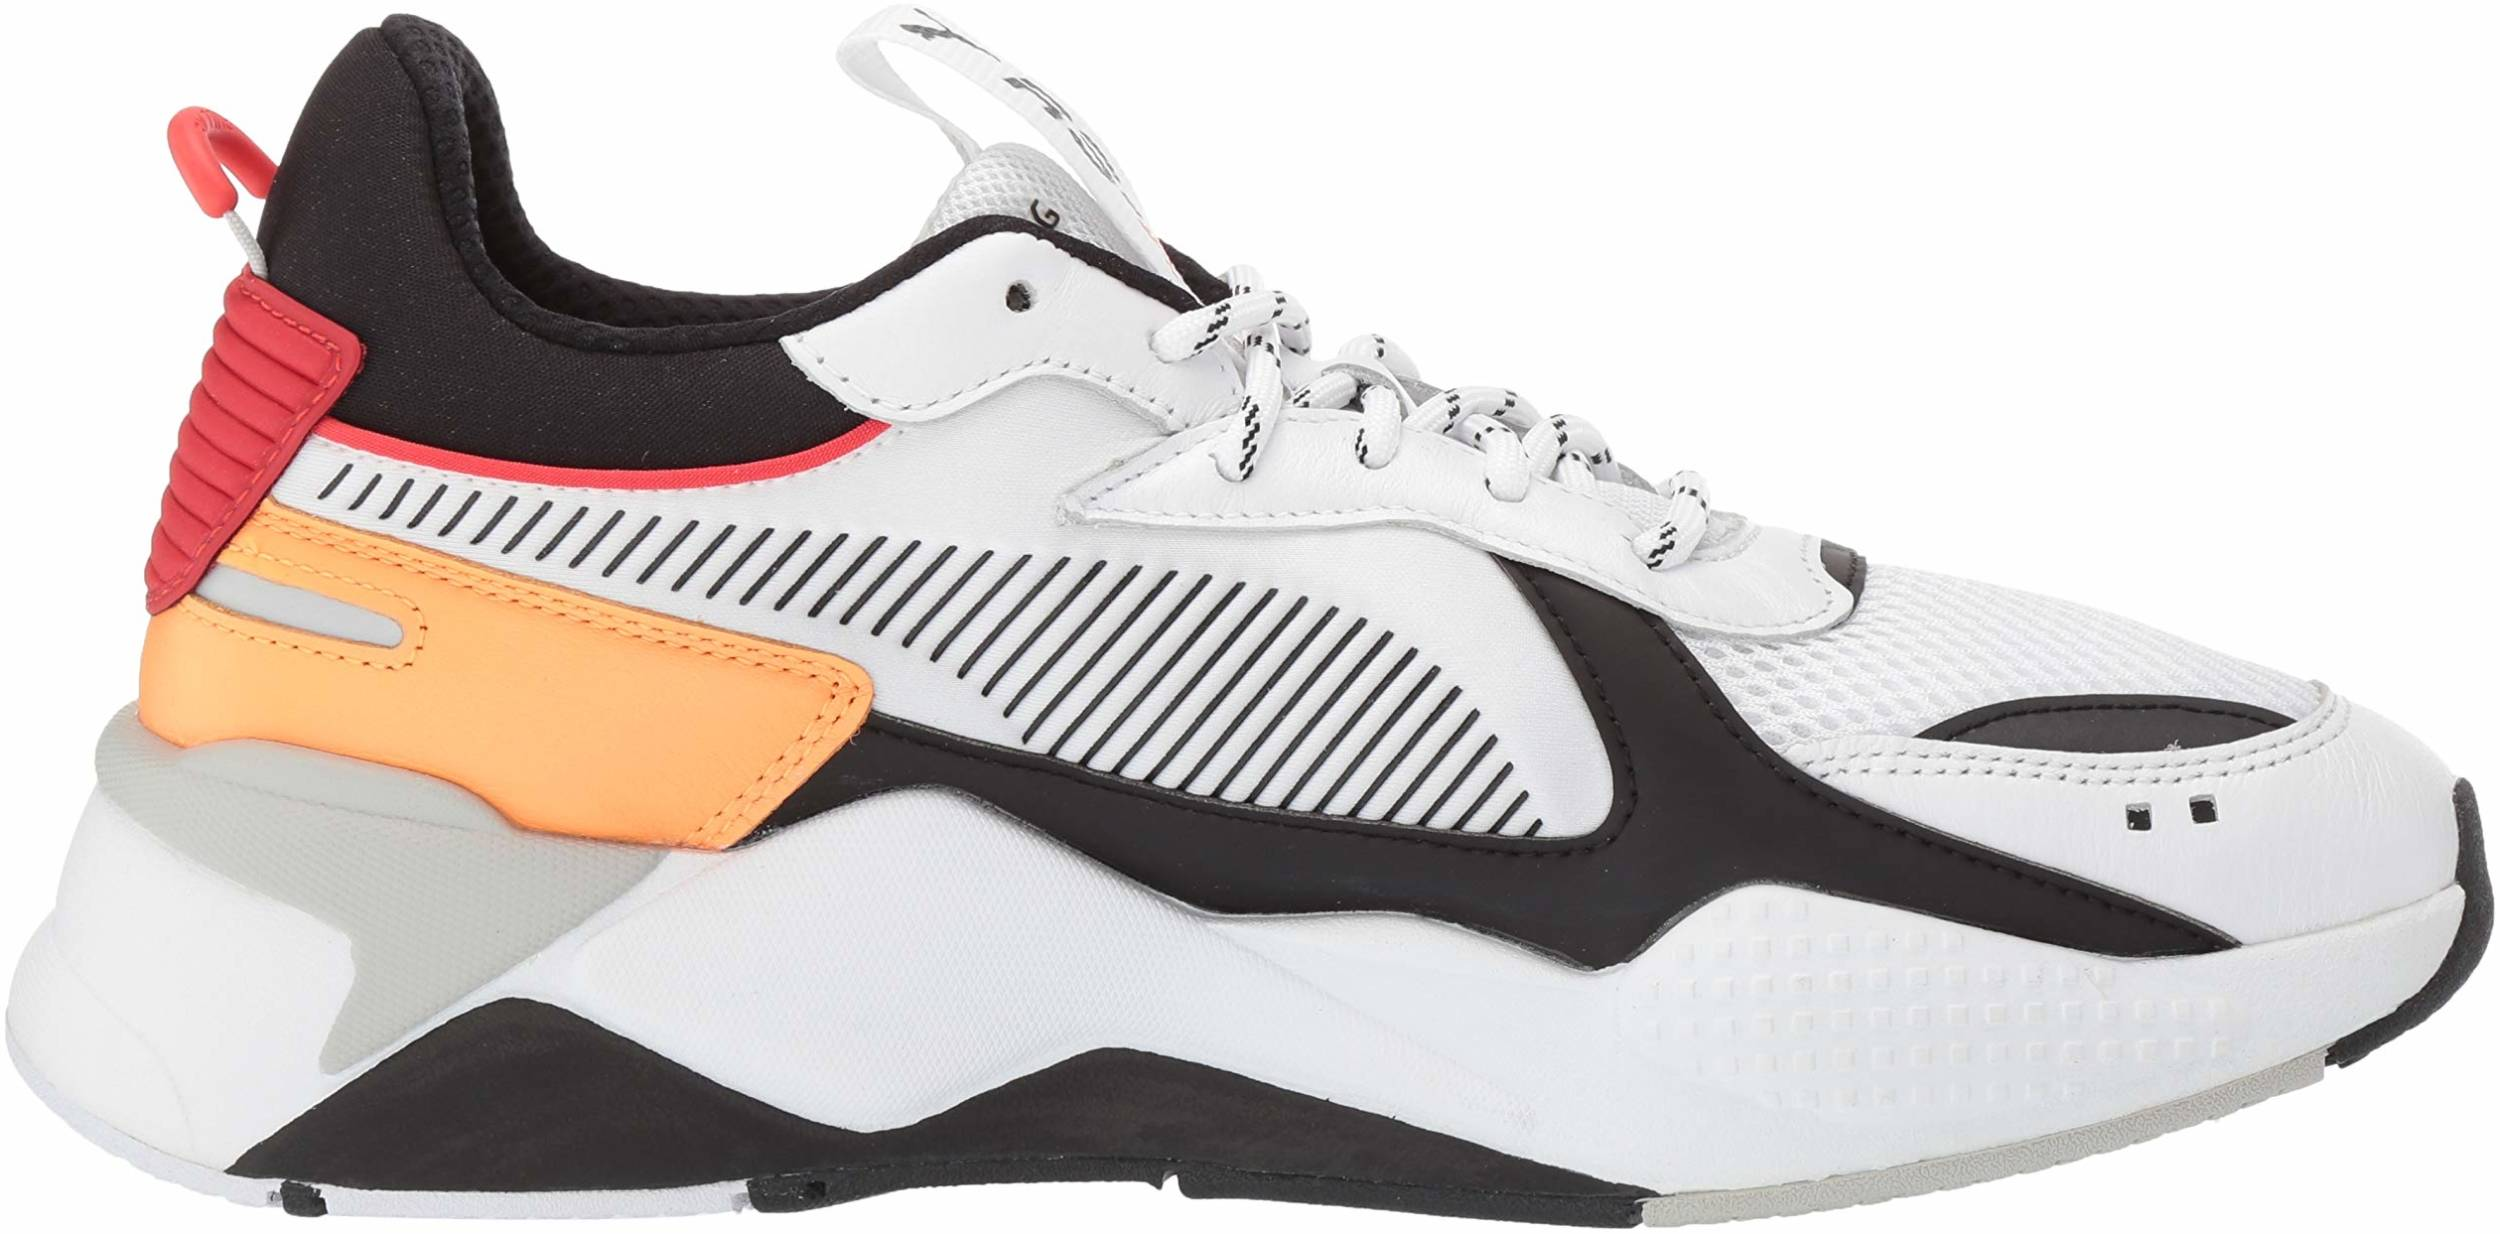 Only $50 + Review of Puma RS-X   RunRepeat